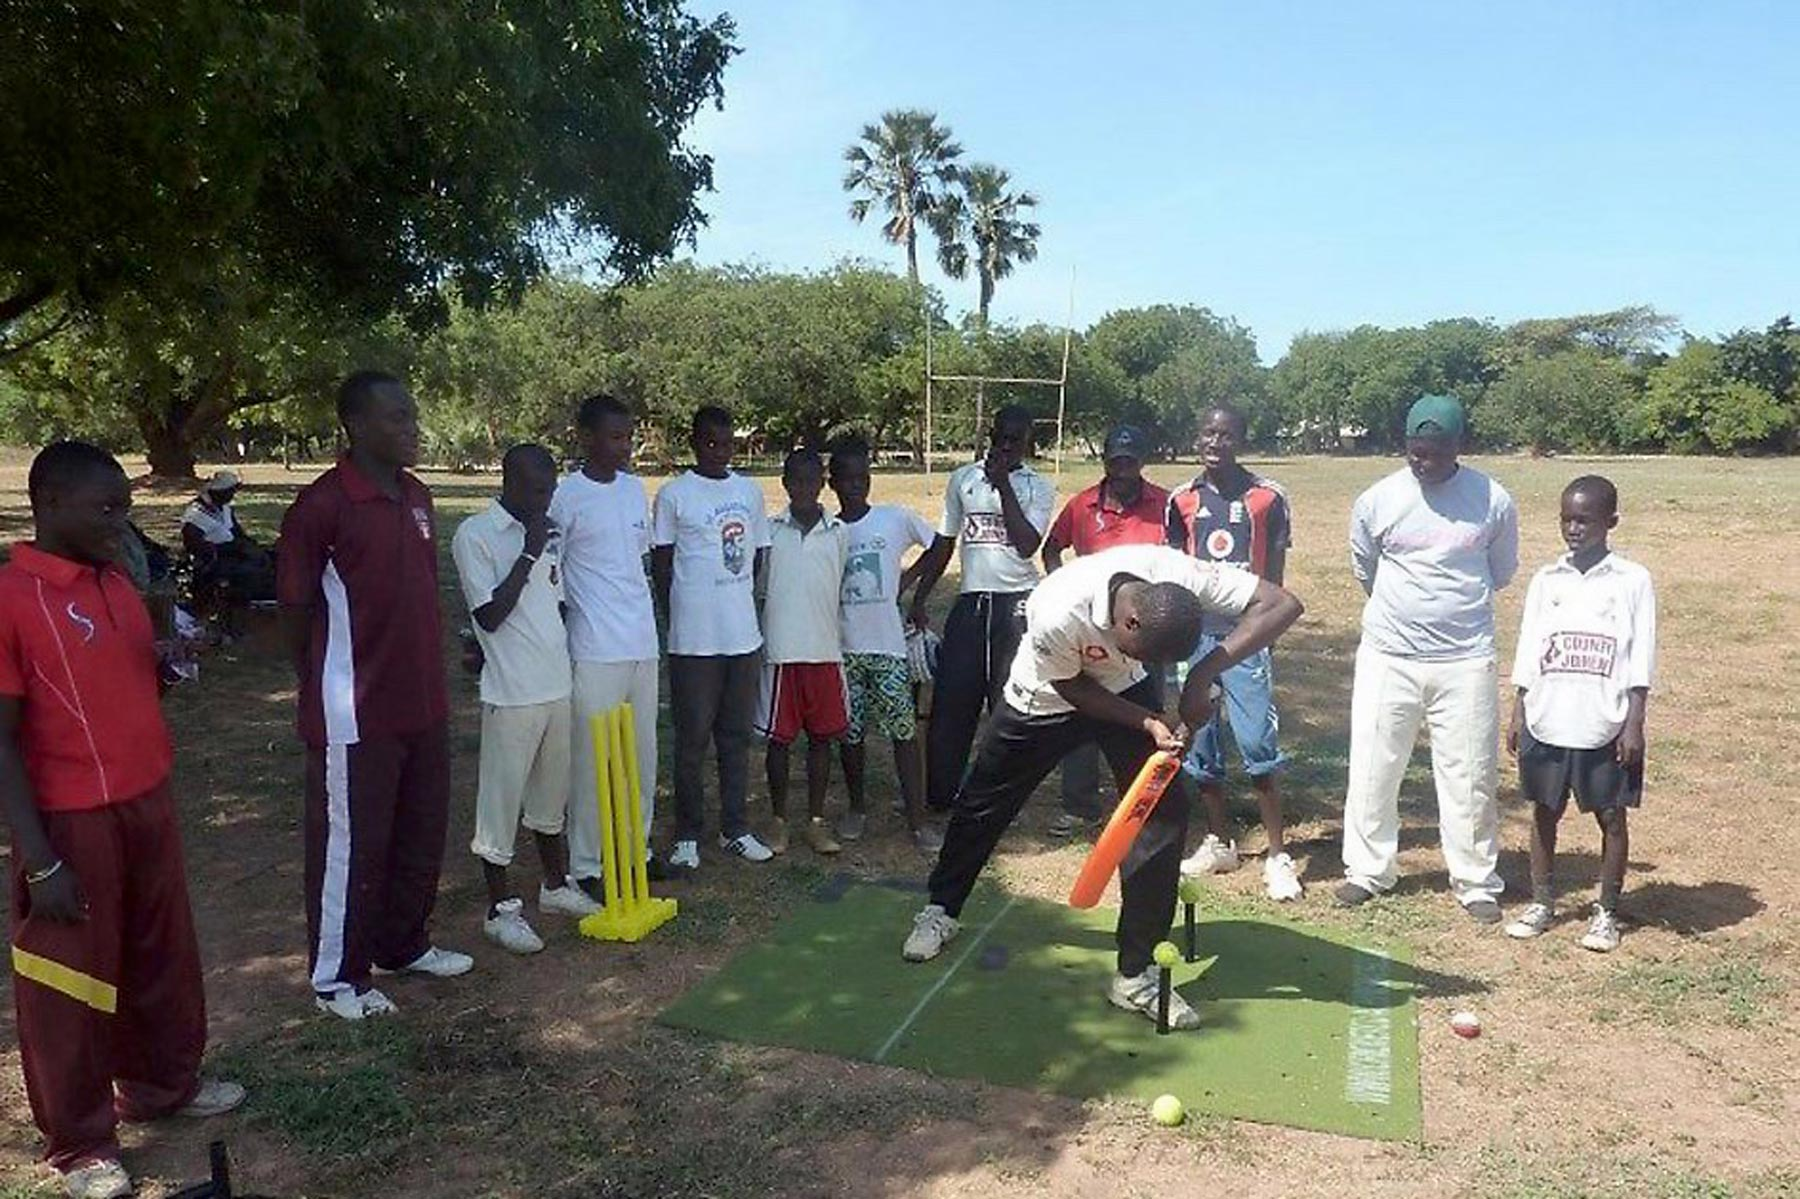 Our Cricket Training Mats go down a storm in The Gambia